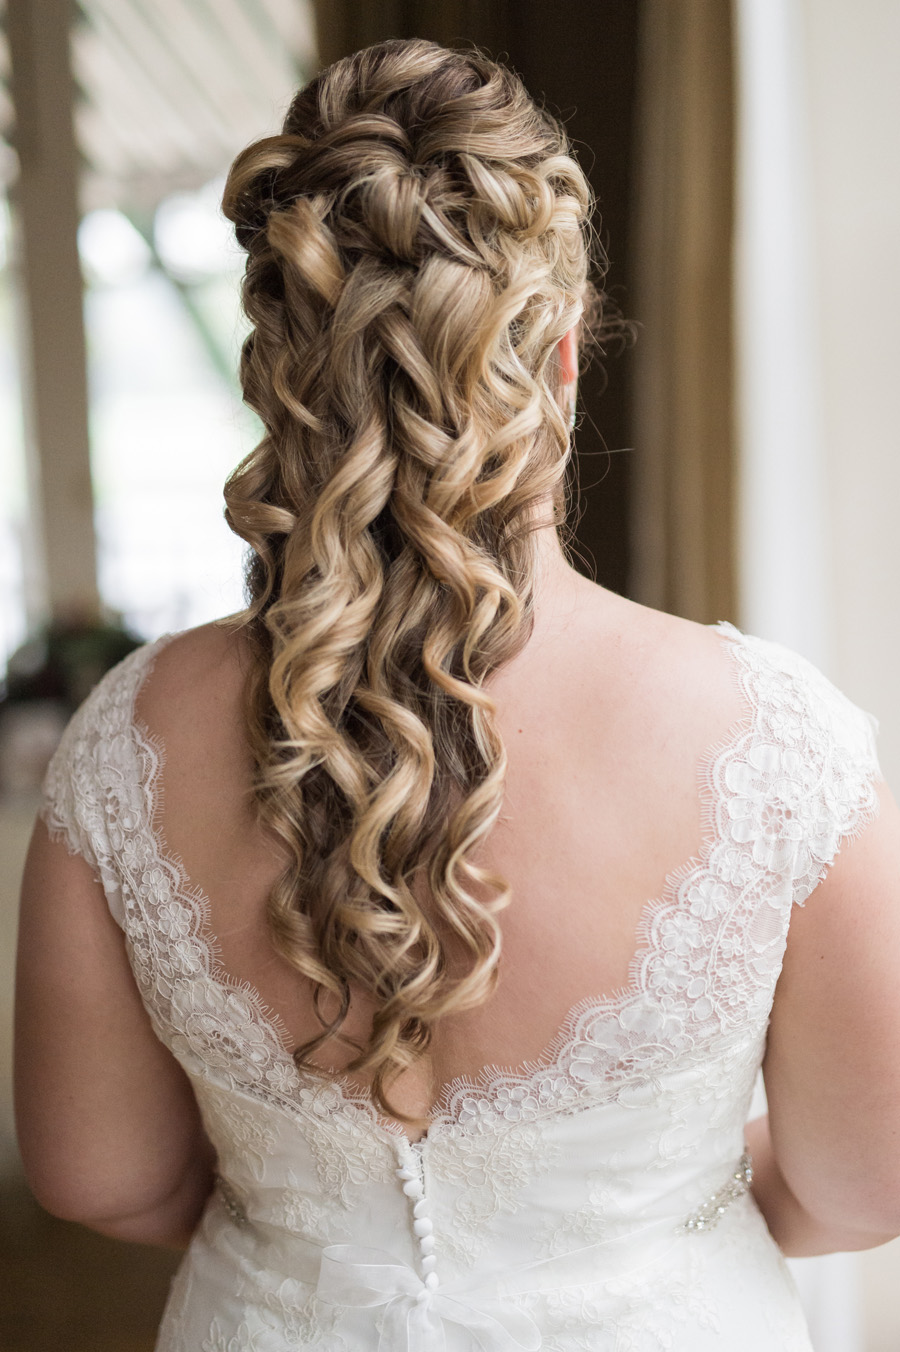 Detail photo of bride's hair.